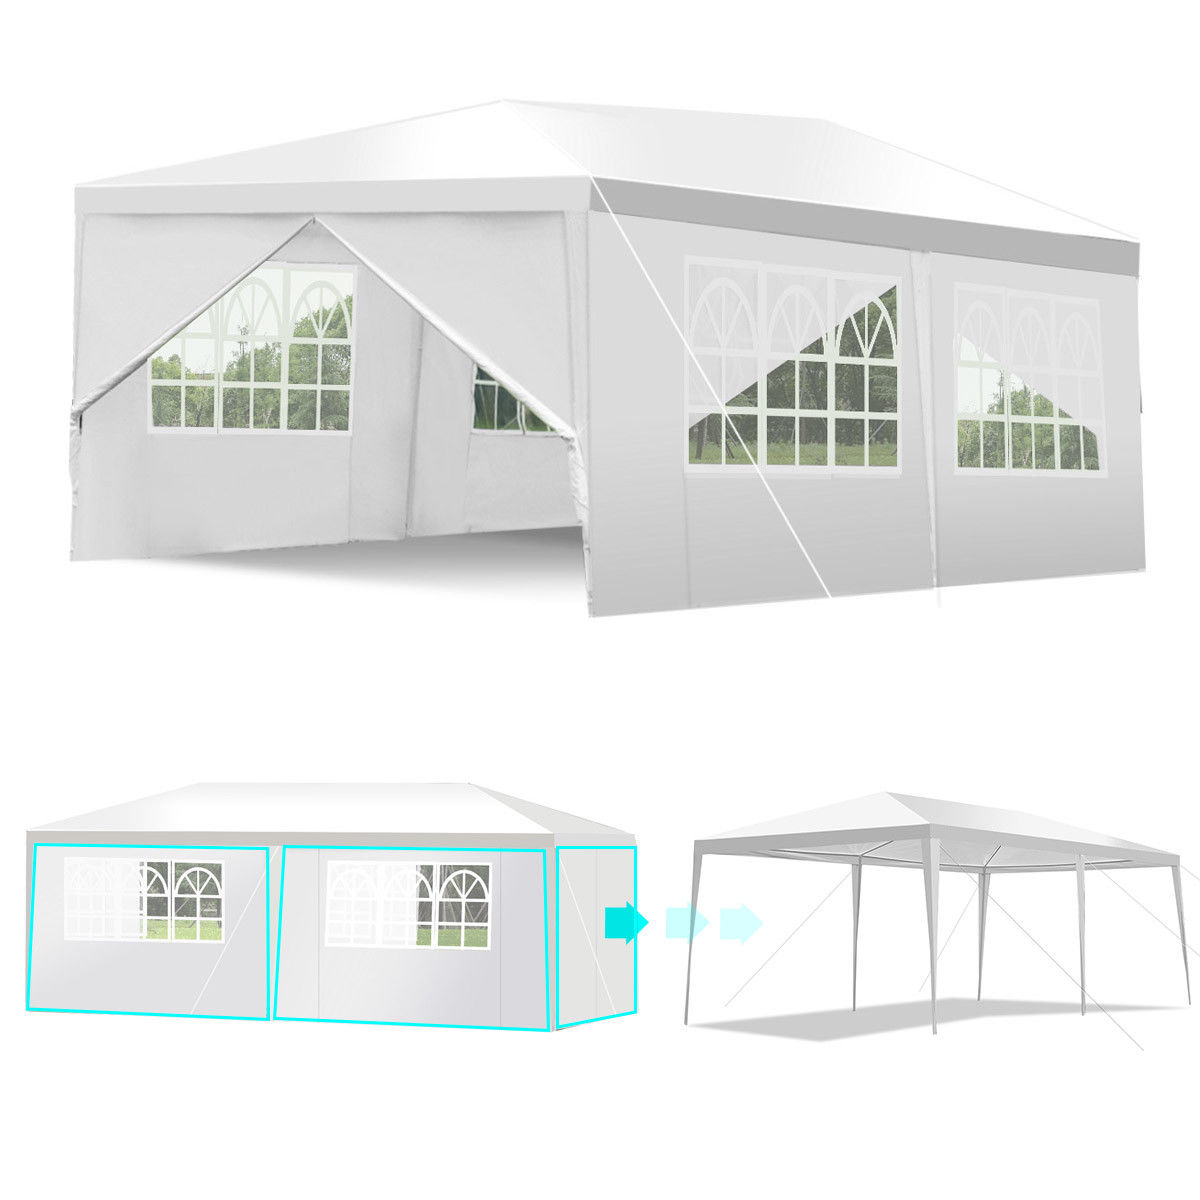 Wedding Tent Canopy Party 10'x20' Heavy Duty Gazebo Cater Event W/ Side Walls - image 5 of 10